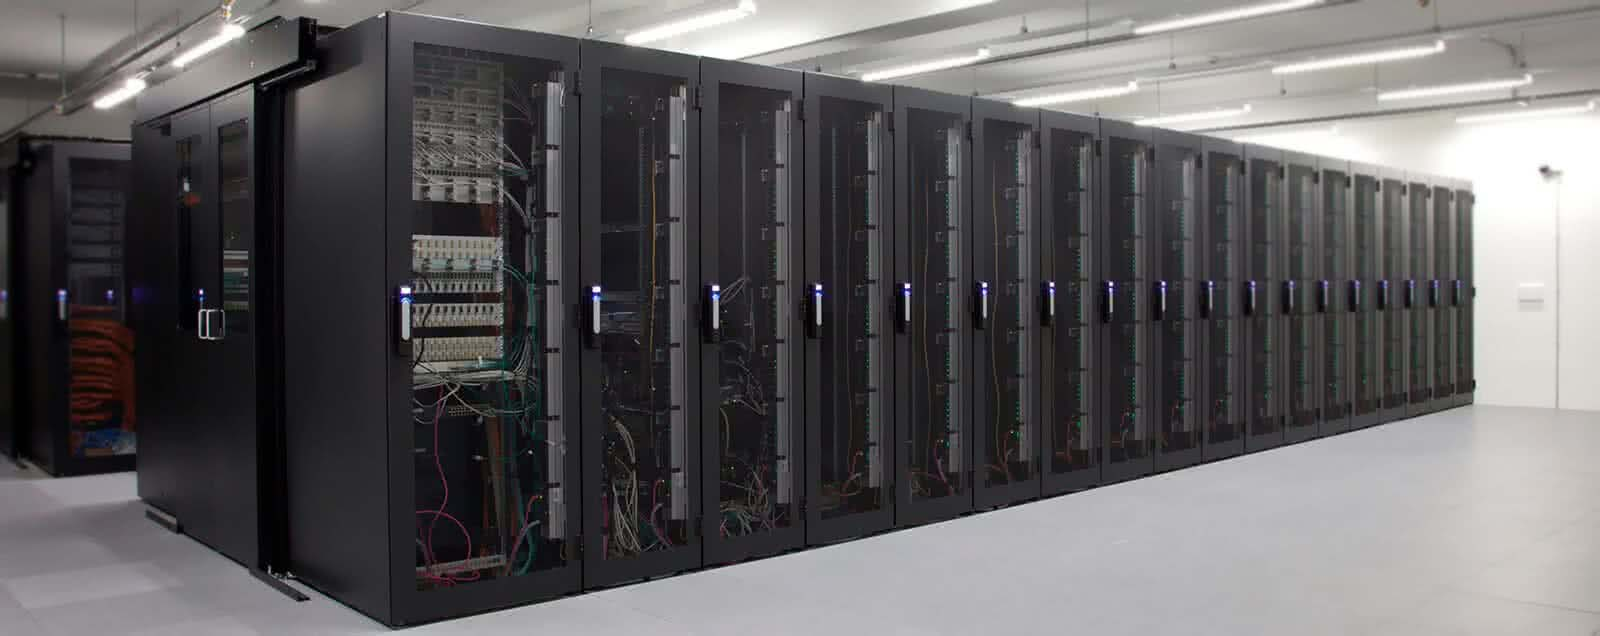 Critical infrastructure and data center support